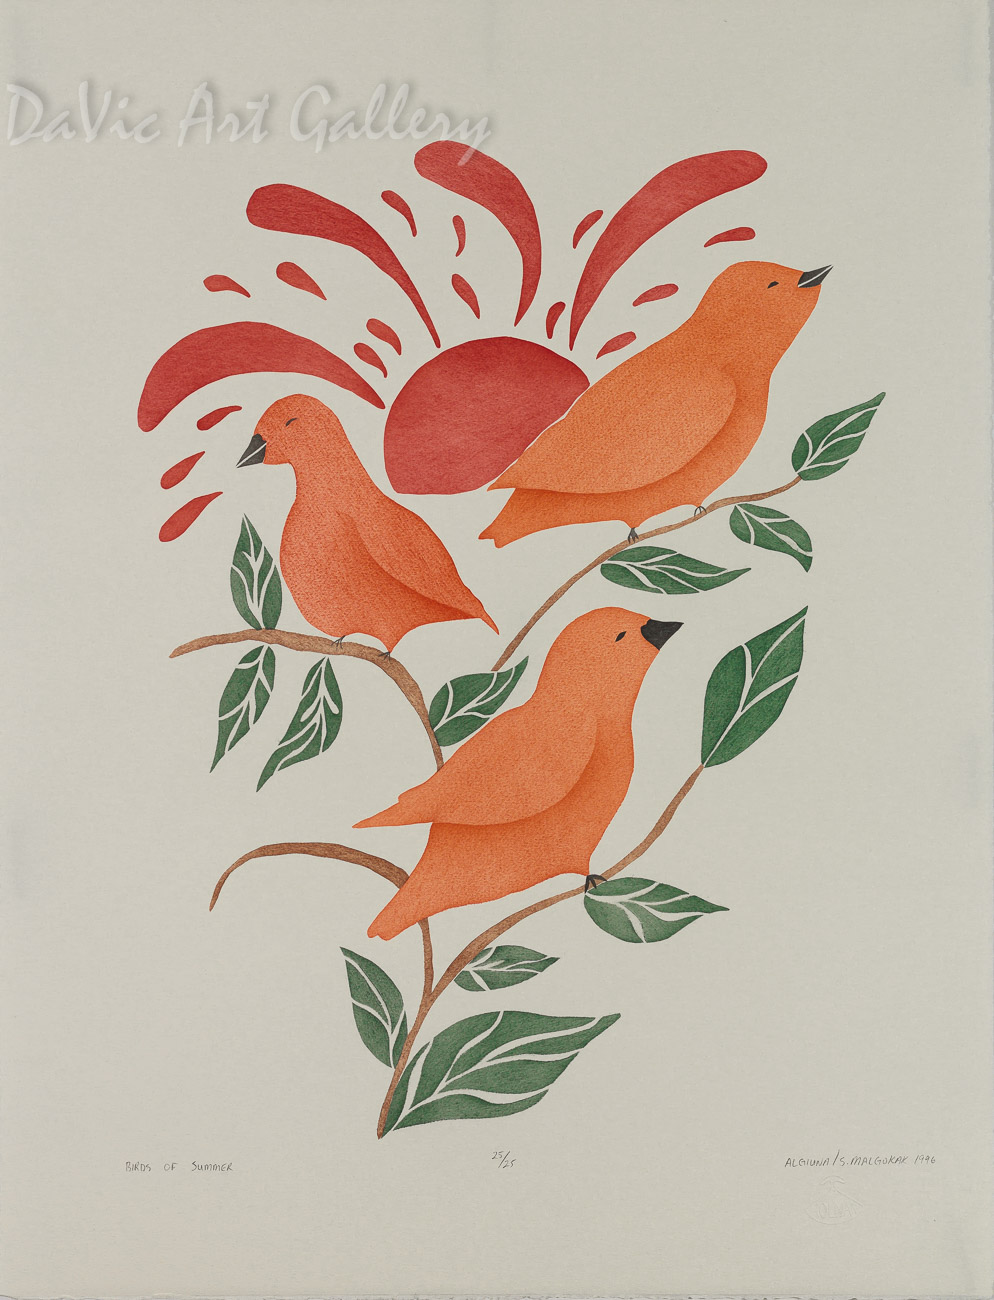 'Birds of Summer' by Beatrice Algiuna - Inuit Art - Ulukhaktok (Holman) 1996